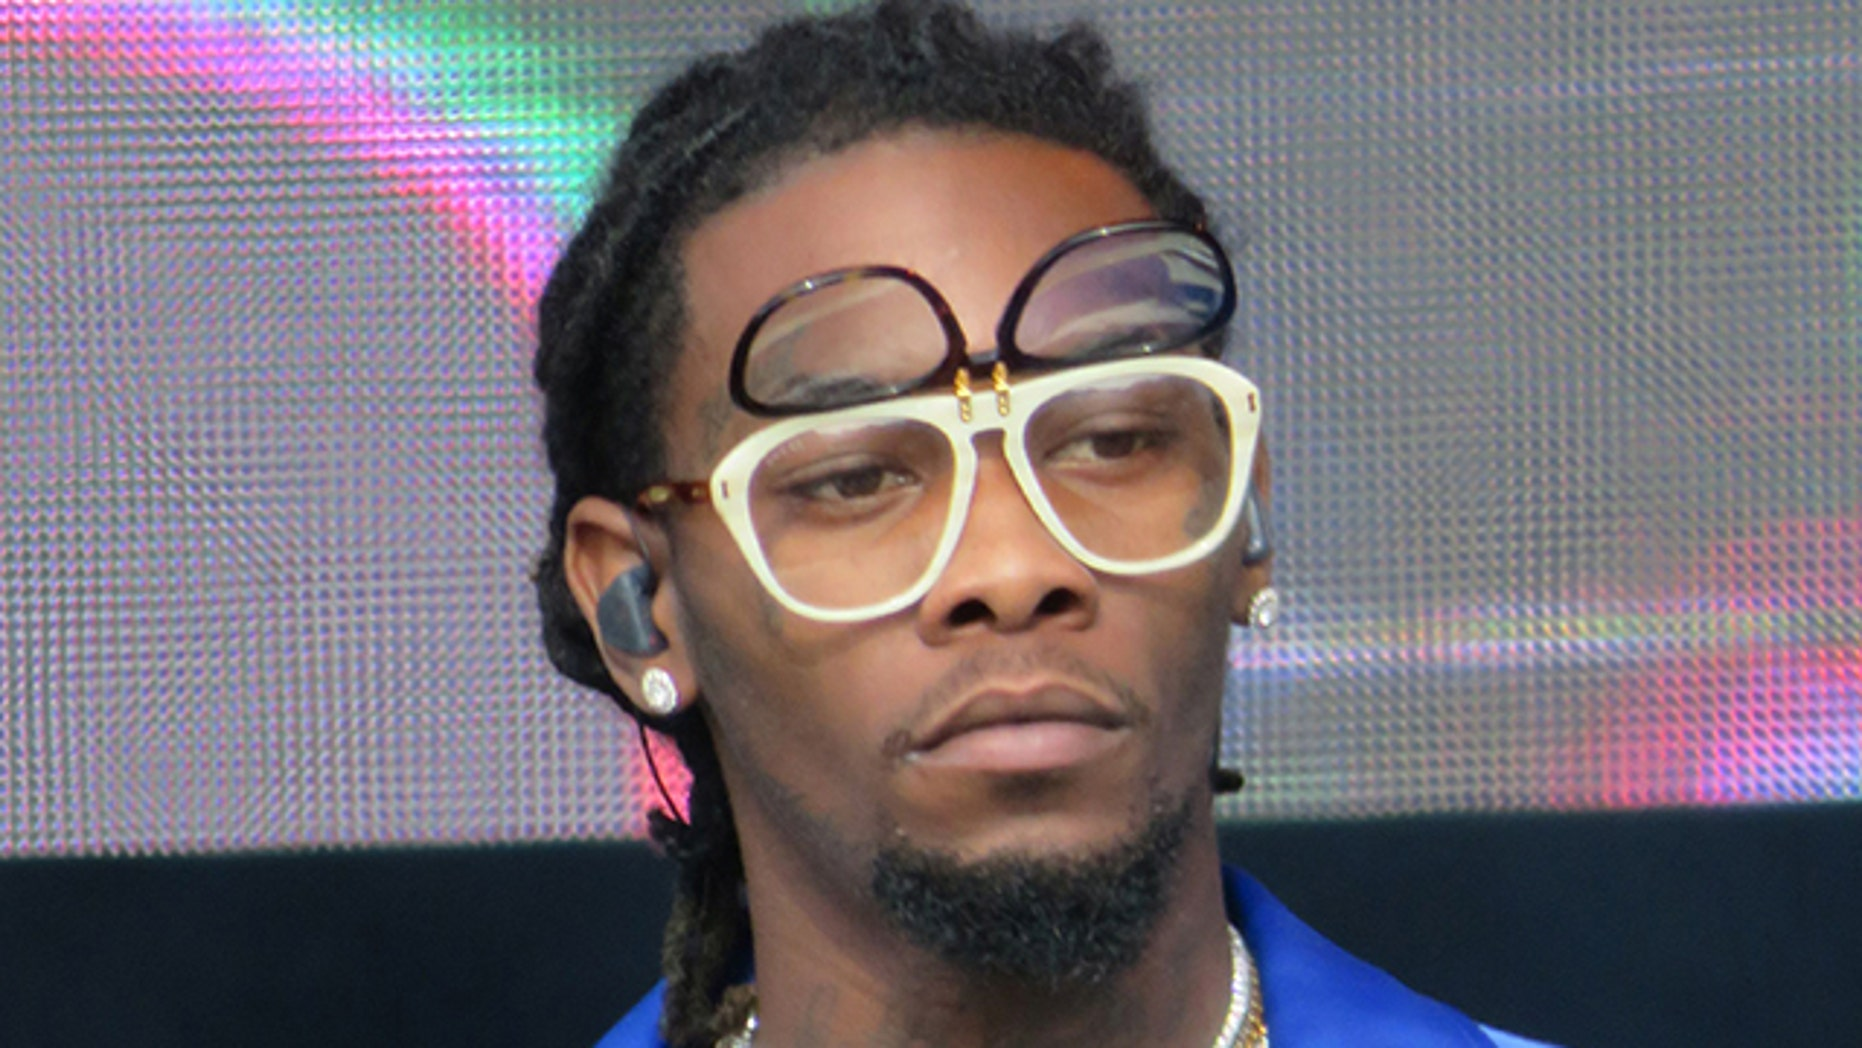 Migos rapper Offset has reportedly been arrested for gun possession.